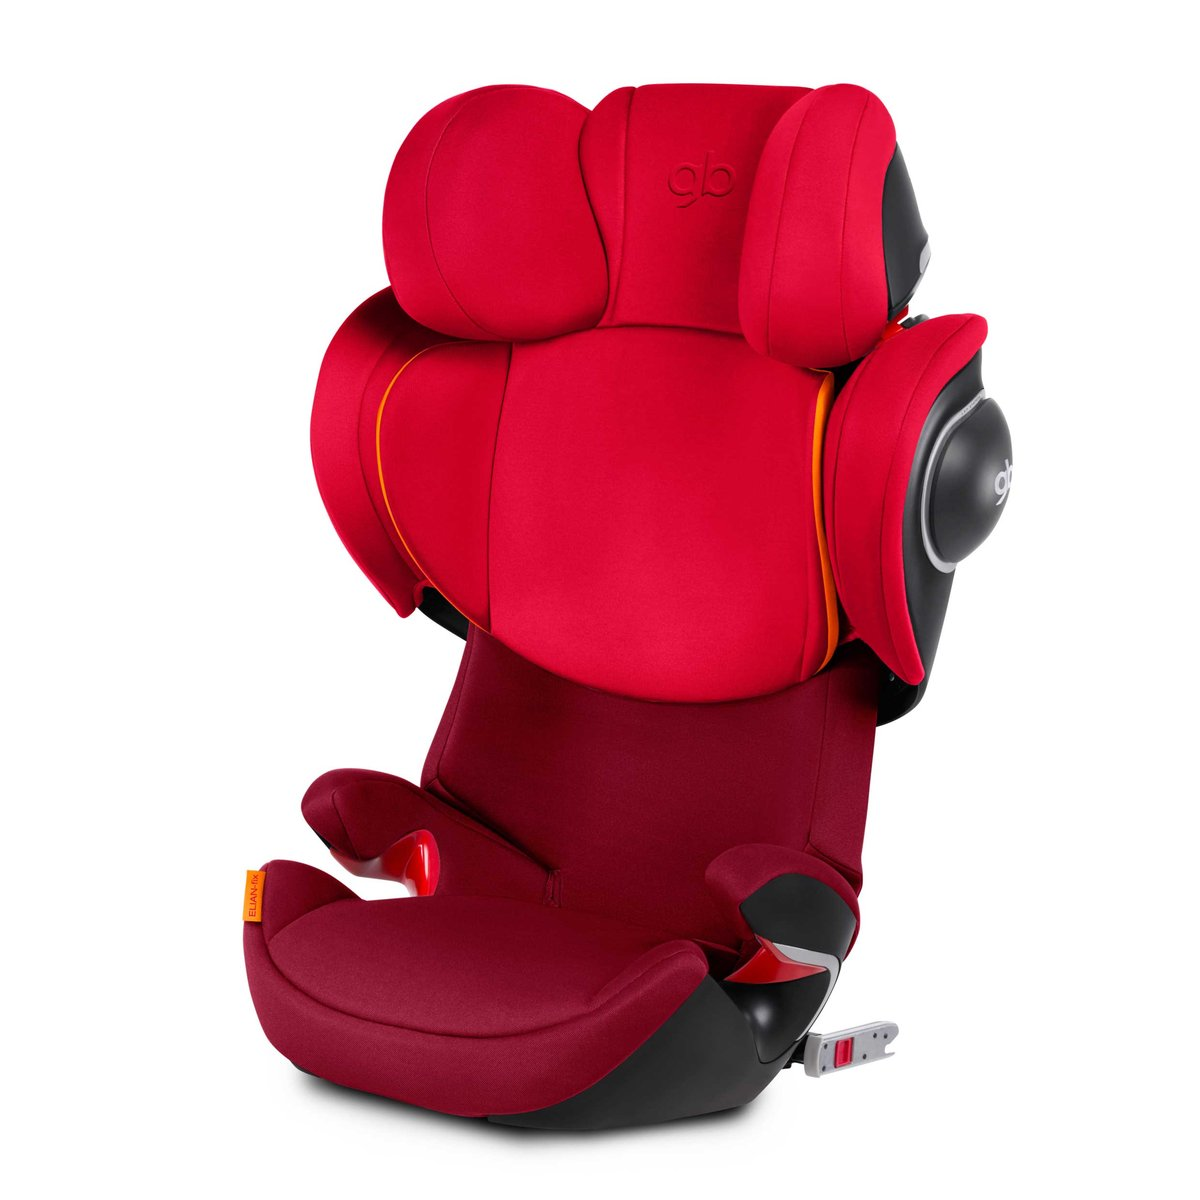 gb Platinum ELIAN-FIX Car Seat - Dragonfire Red